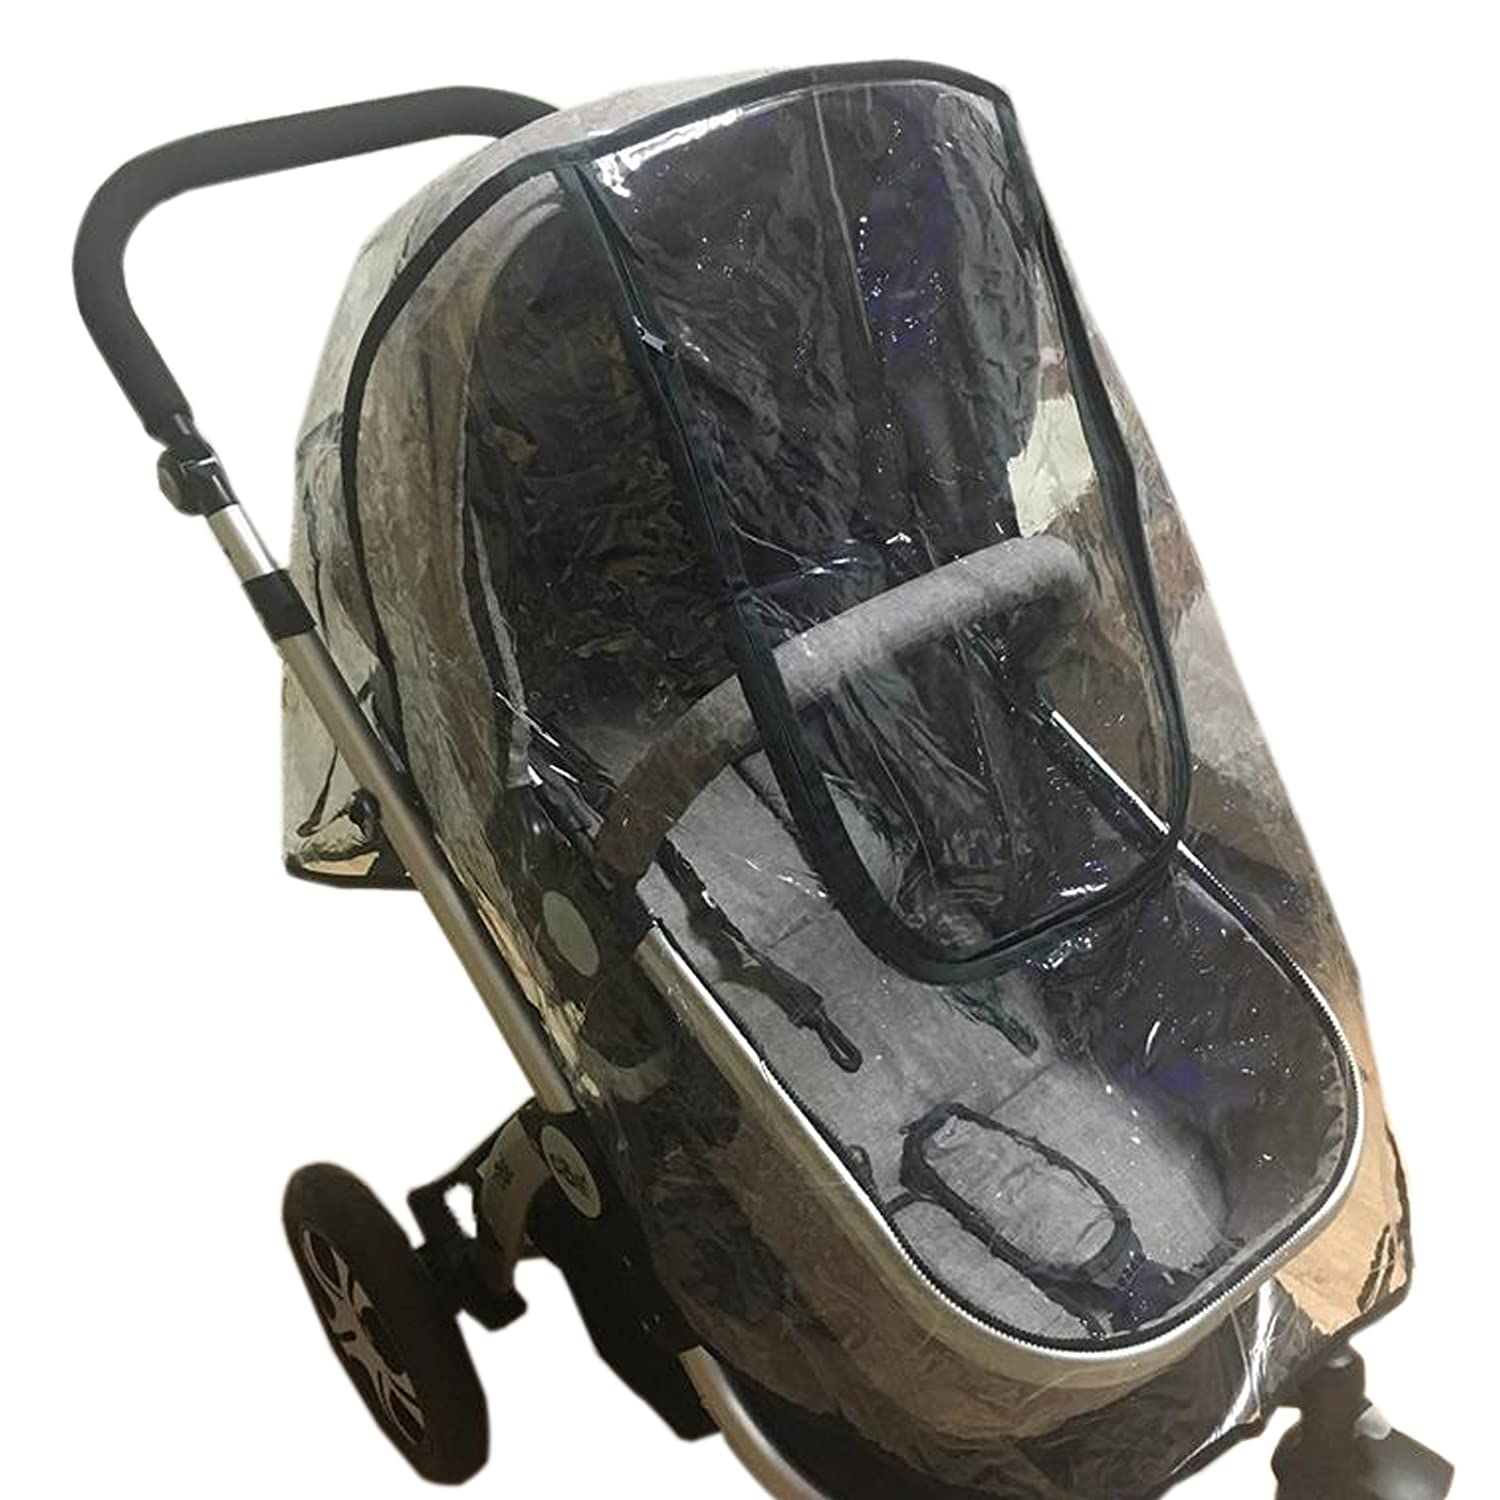 Elonglin Universal Baby Stroller RainCover Upgraded Rainproof Dustproof Windproof Shield Cover Travel System Pushchair Throw Over Buggy Deluxe Rain Cover Fits Hundreds of Models Pram/Carriage Matte EL.YZ0398-3